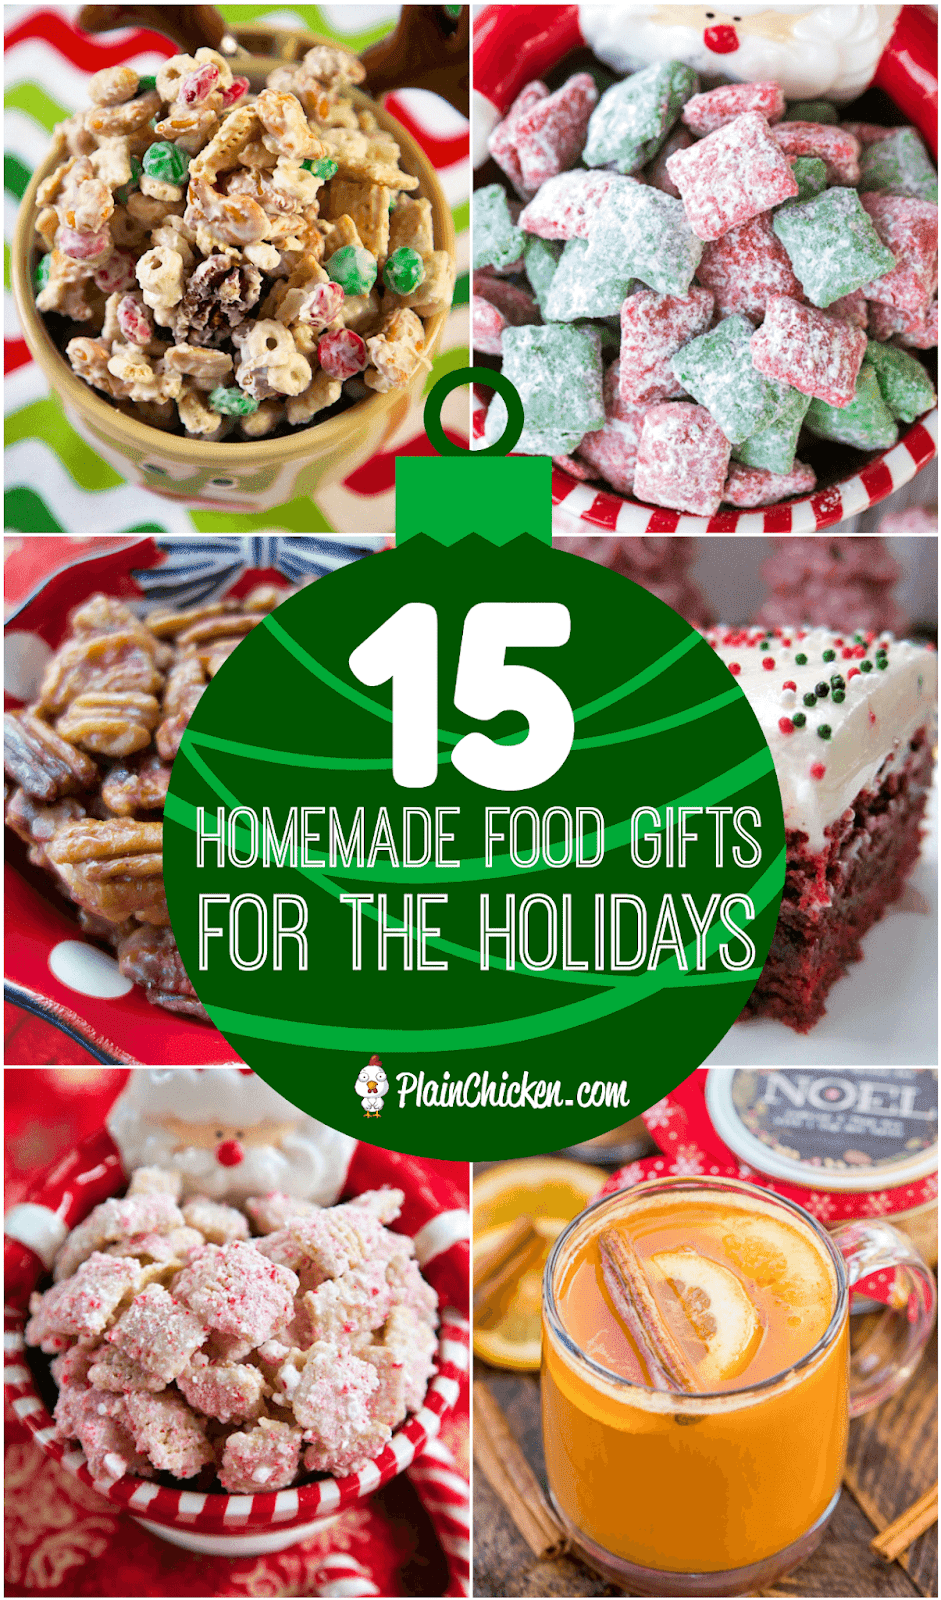 15 Homemade Food Gifts for the Holidays -homemade gifts are the BEST gifts! Here are 15 ideas for easy homemade holiday gifts - perfect for teachers, co-workers and friends!! Something for everyone! #homemade #handmadechristmas #christmas